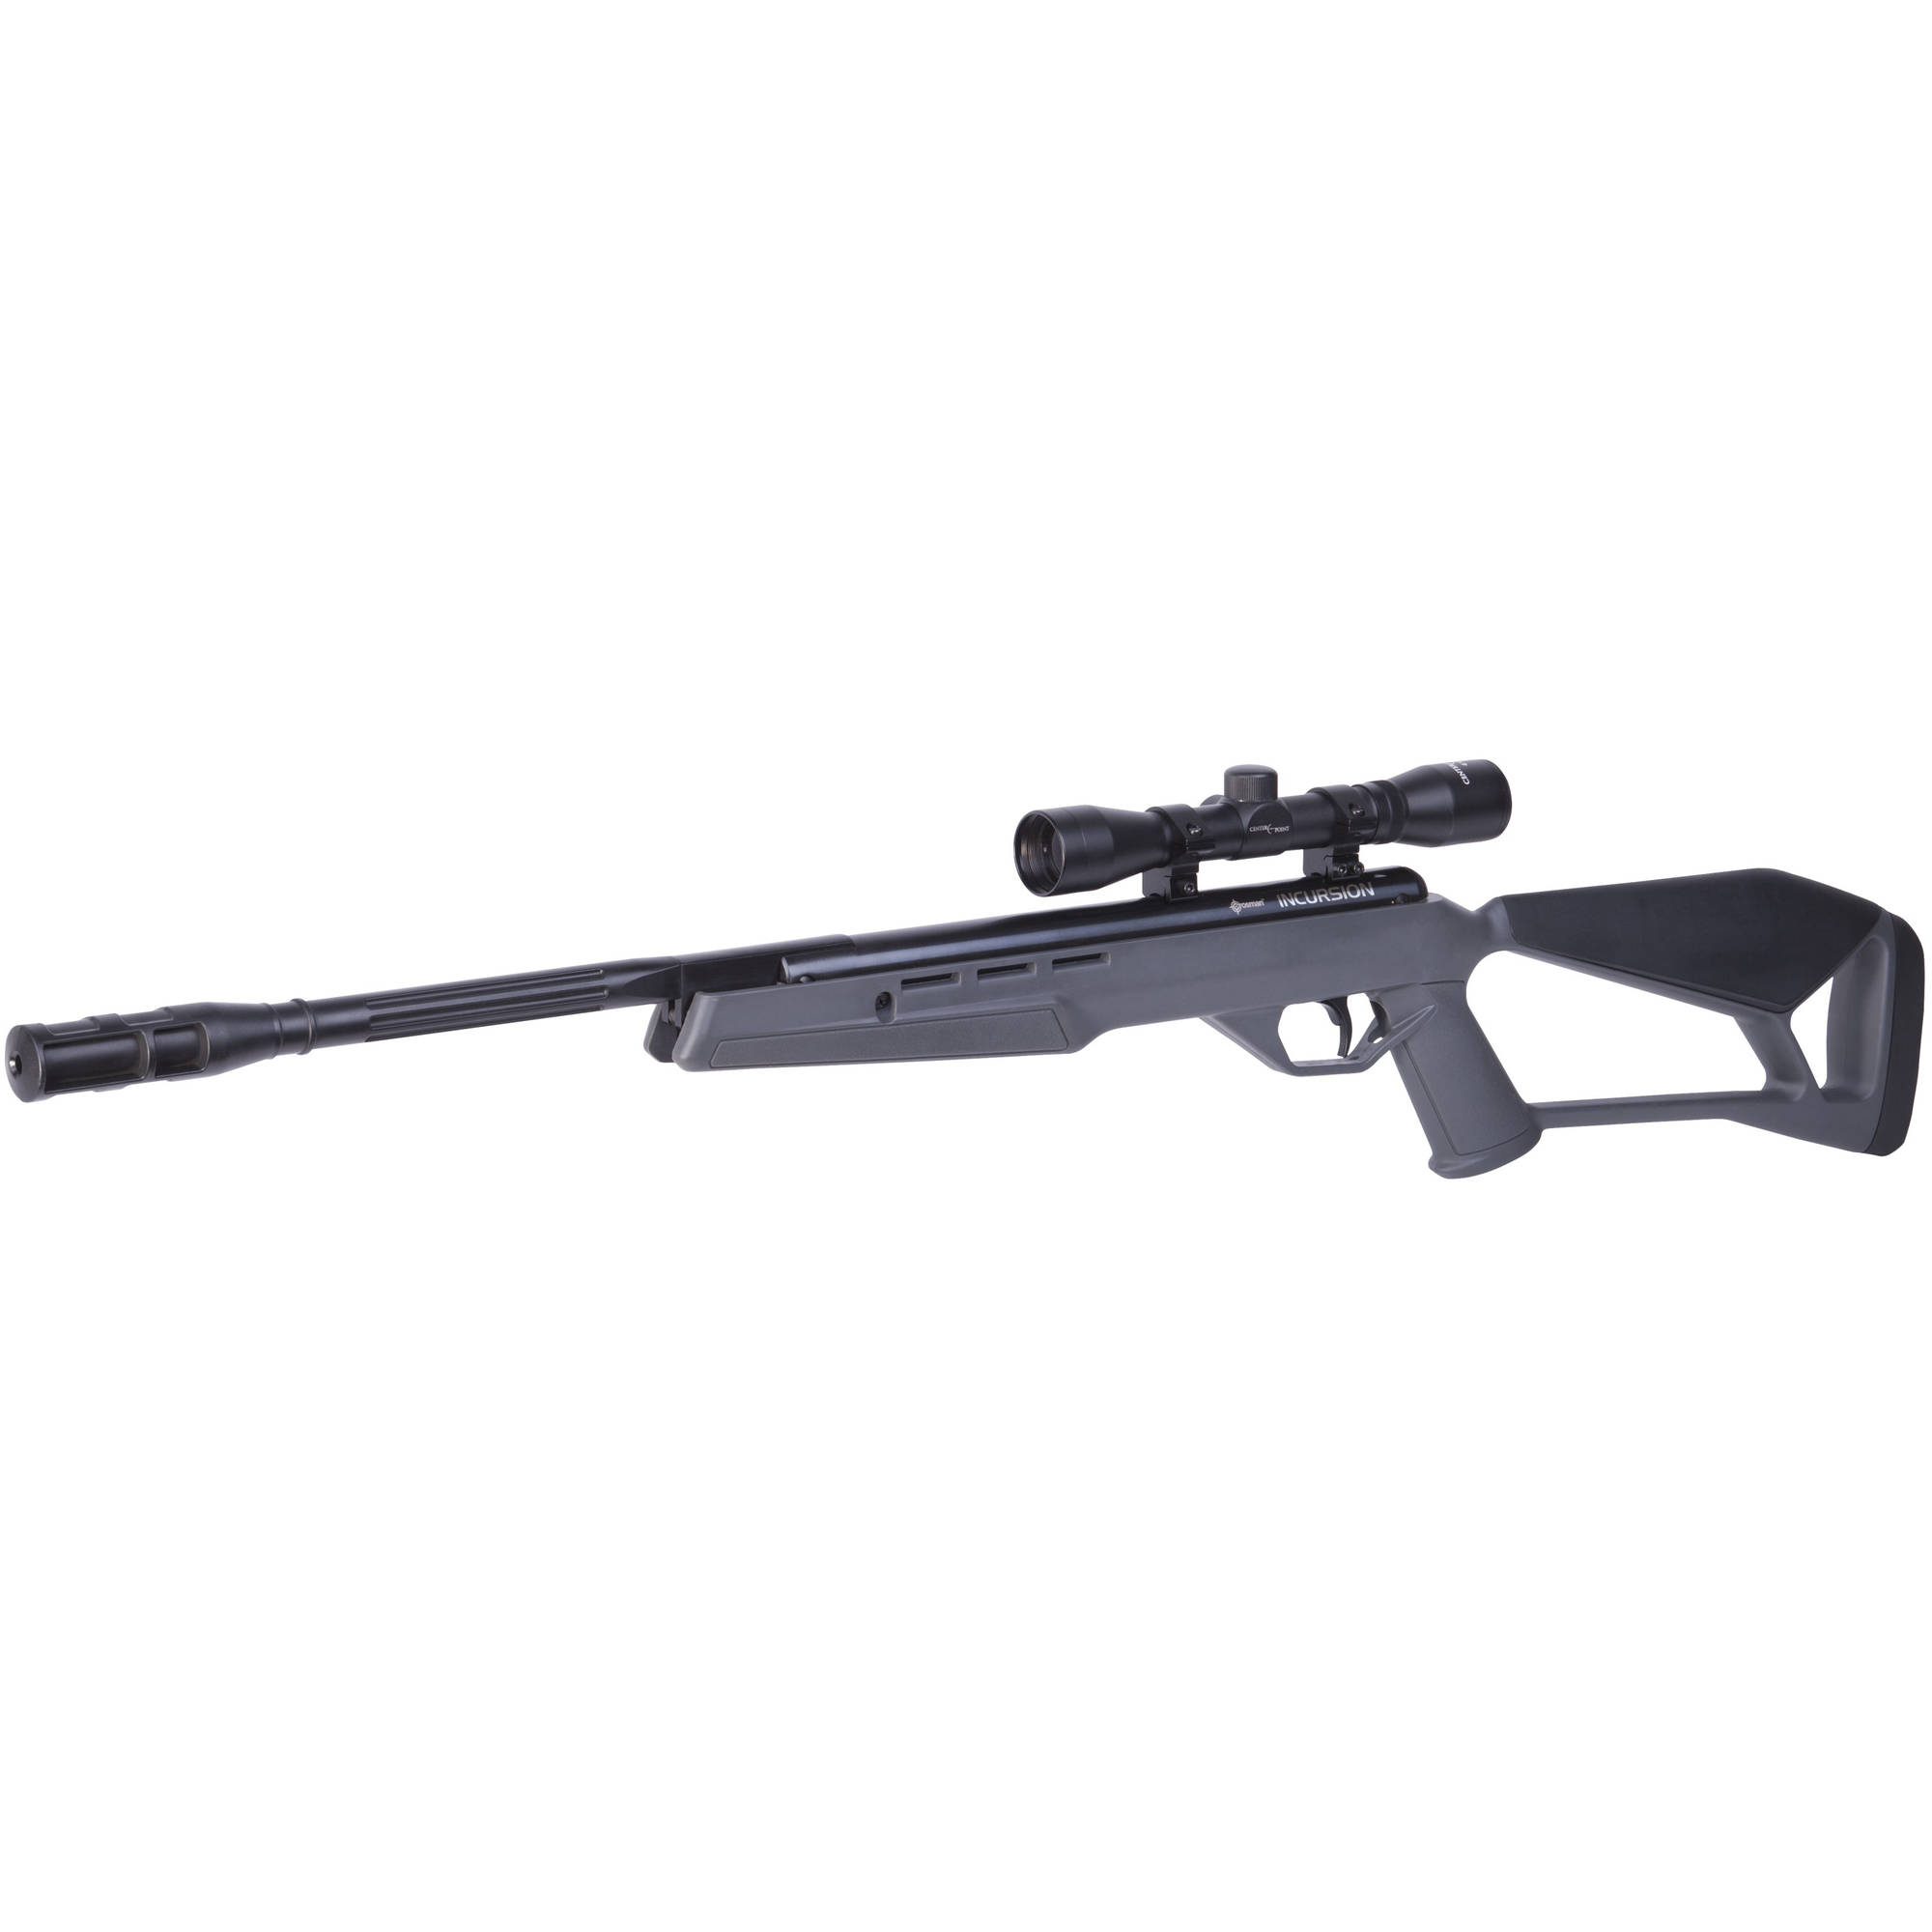 Crosman Incursion NP .177 Caliber Break Barrel Air Rifle with Scope, 1200fps by Crosman